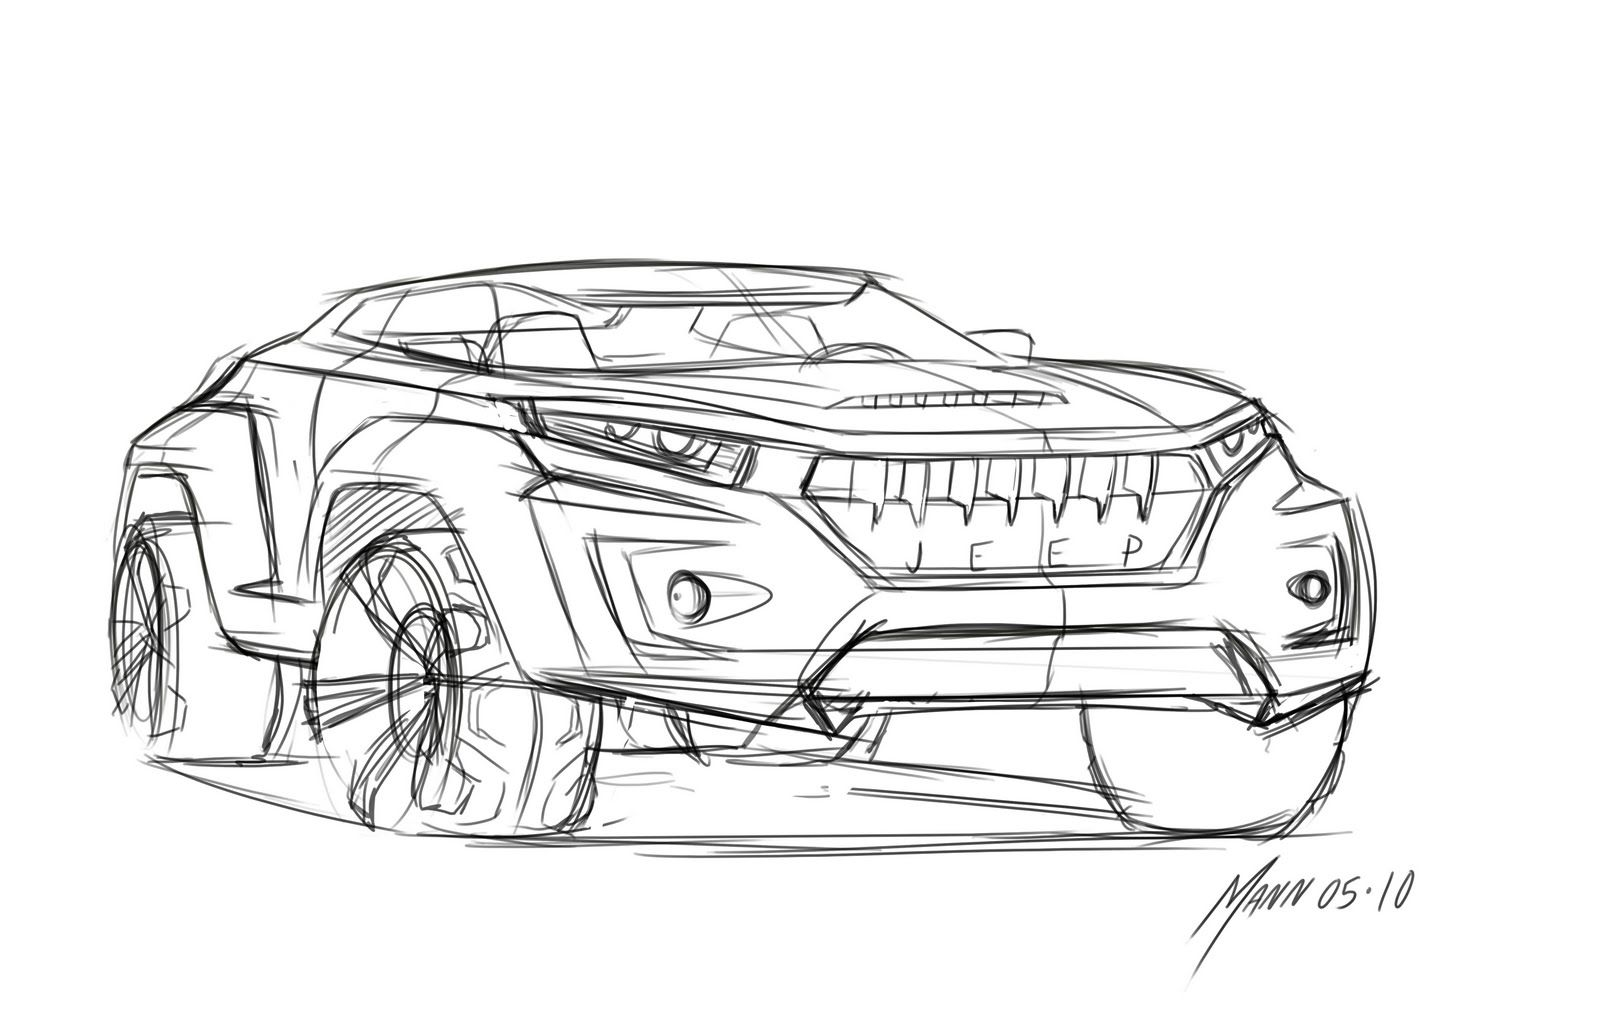 citroen sketch - Google 검색 | sketch | Pinterest